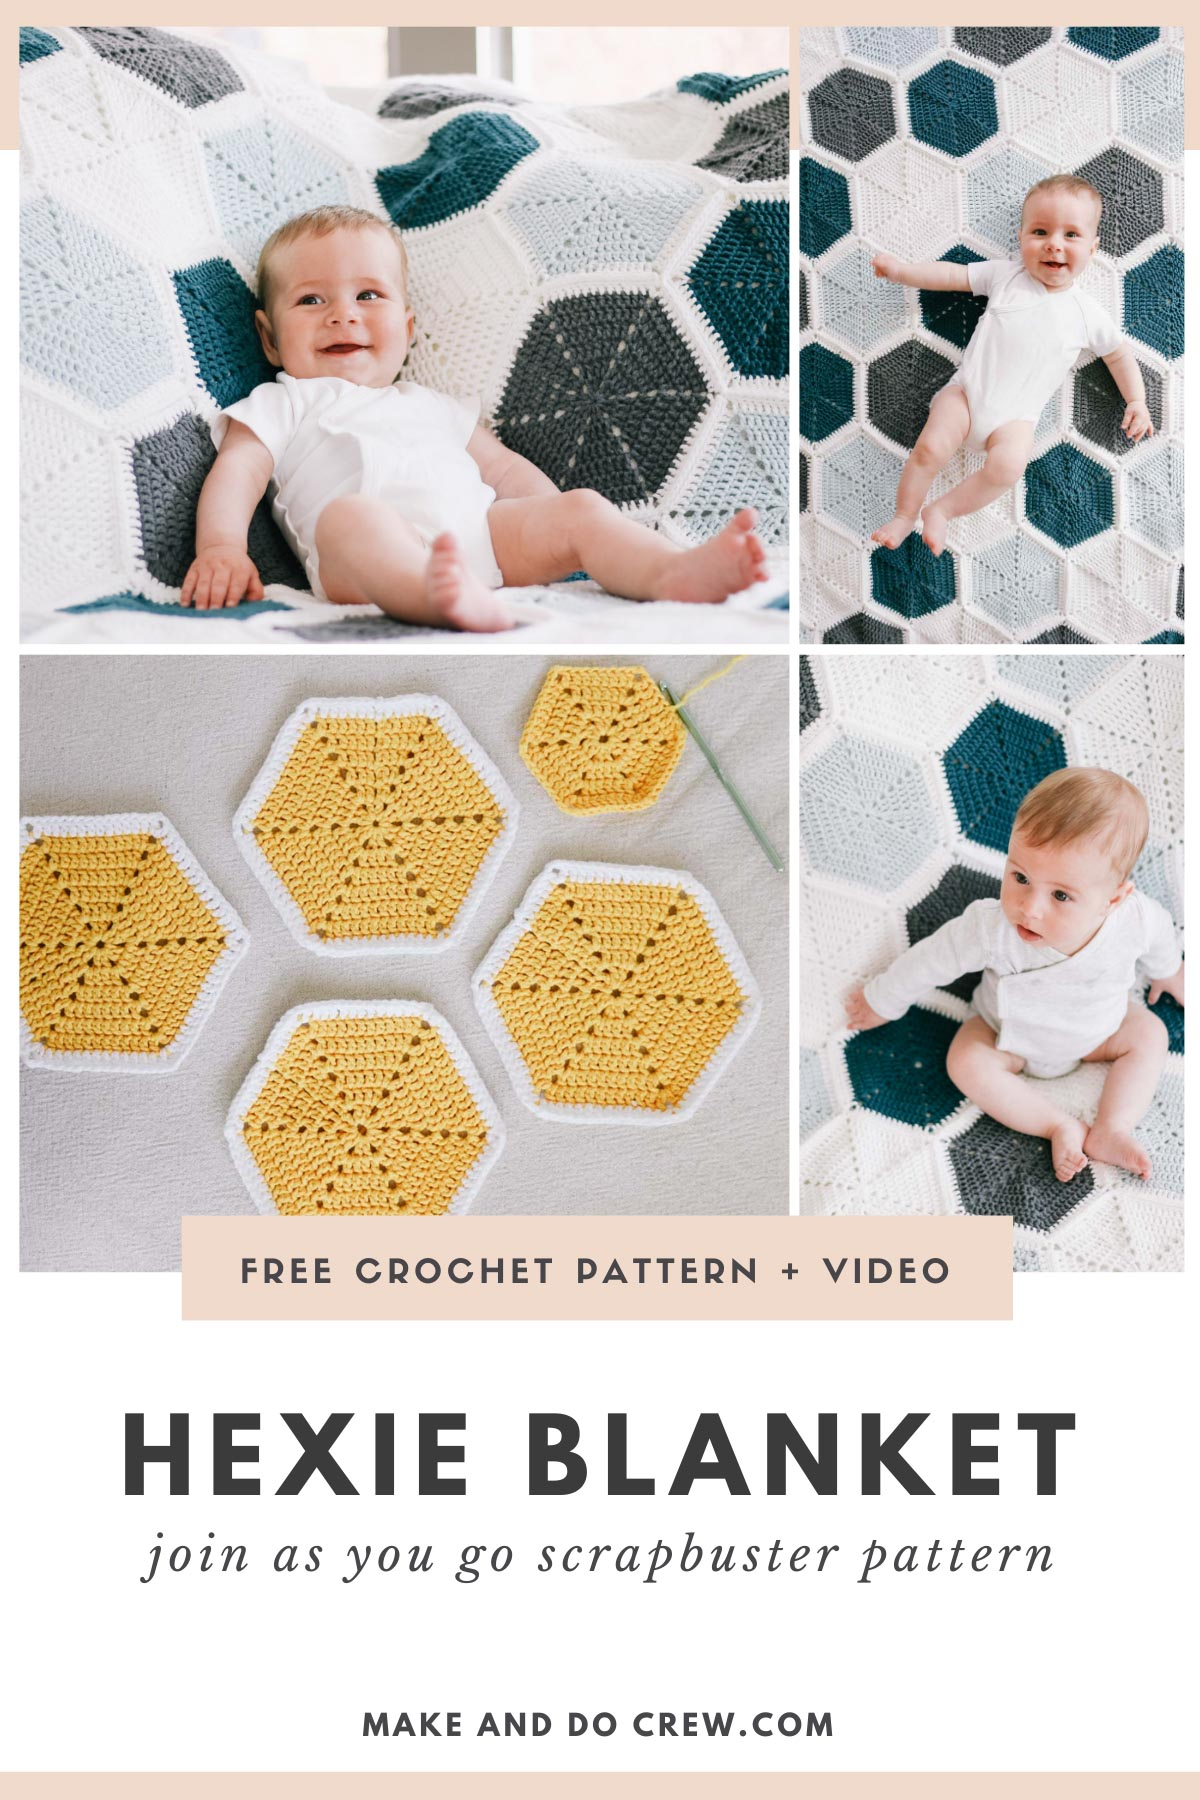 A grid of photos of a modern crochet join as you go hexagon blanket. A cute baby lays on top of the blanket made with Lion Brand Feels Like Butta yarn.